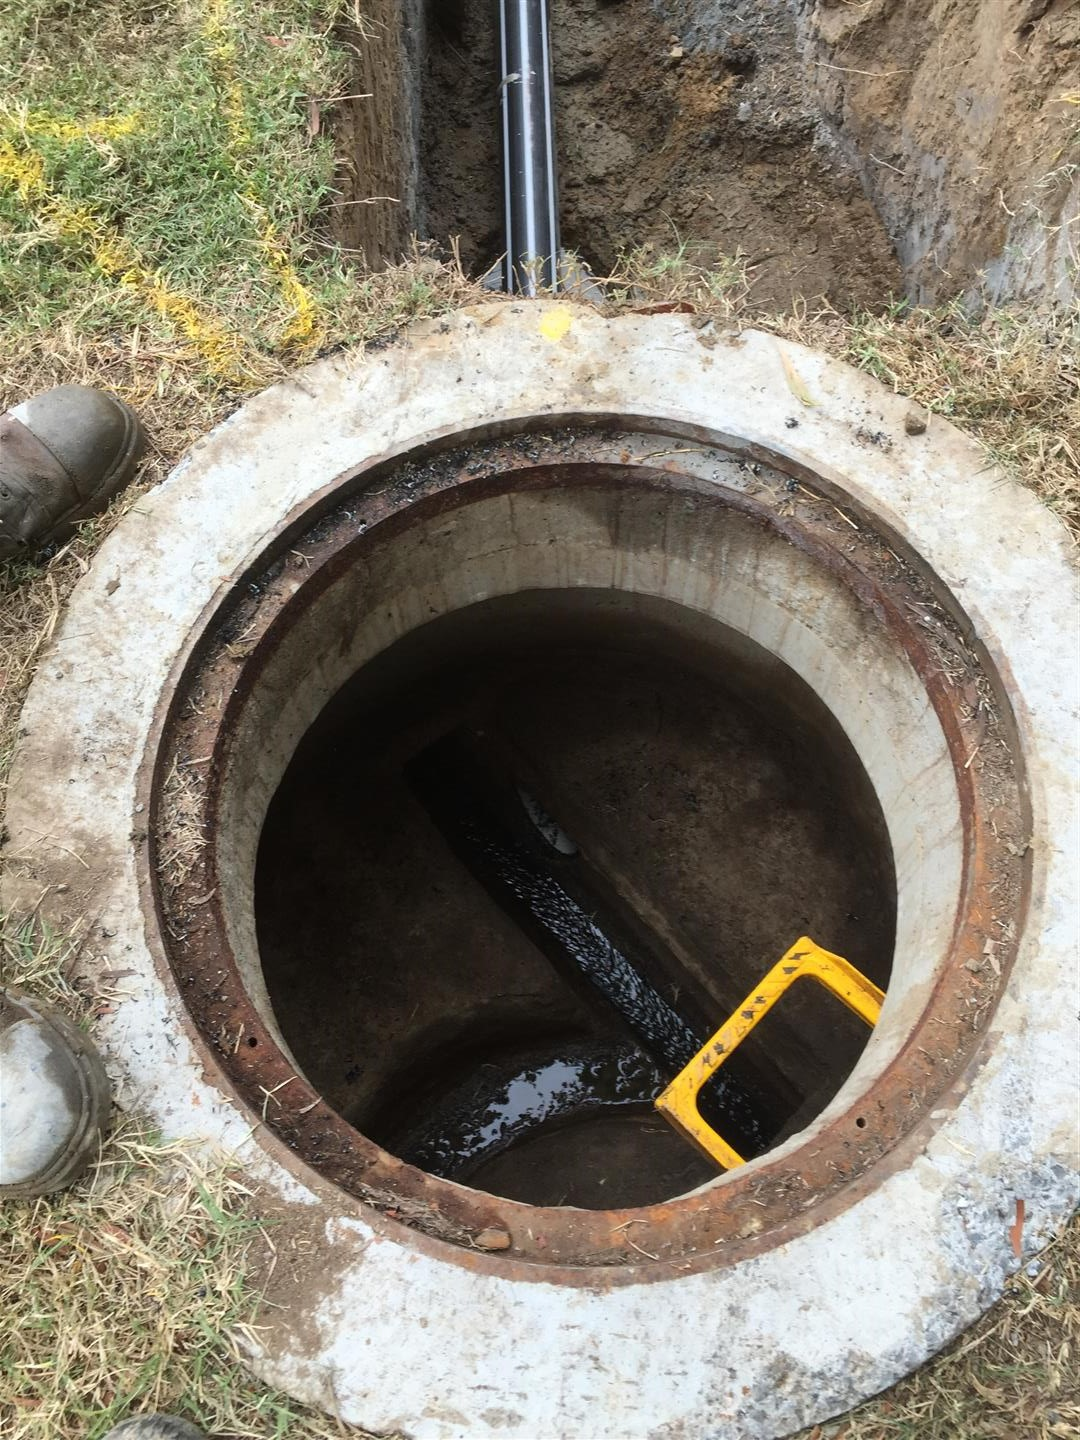 sewer man hole